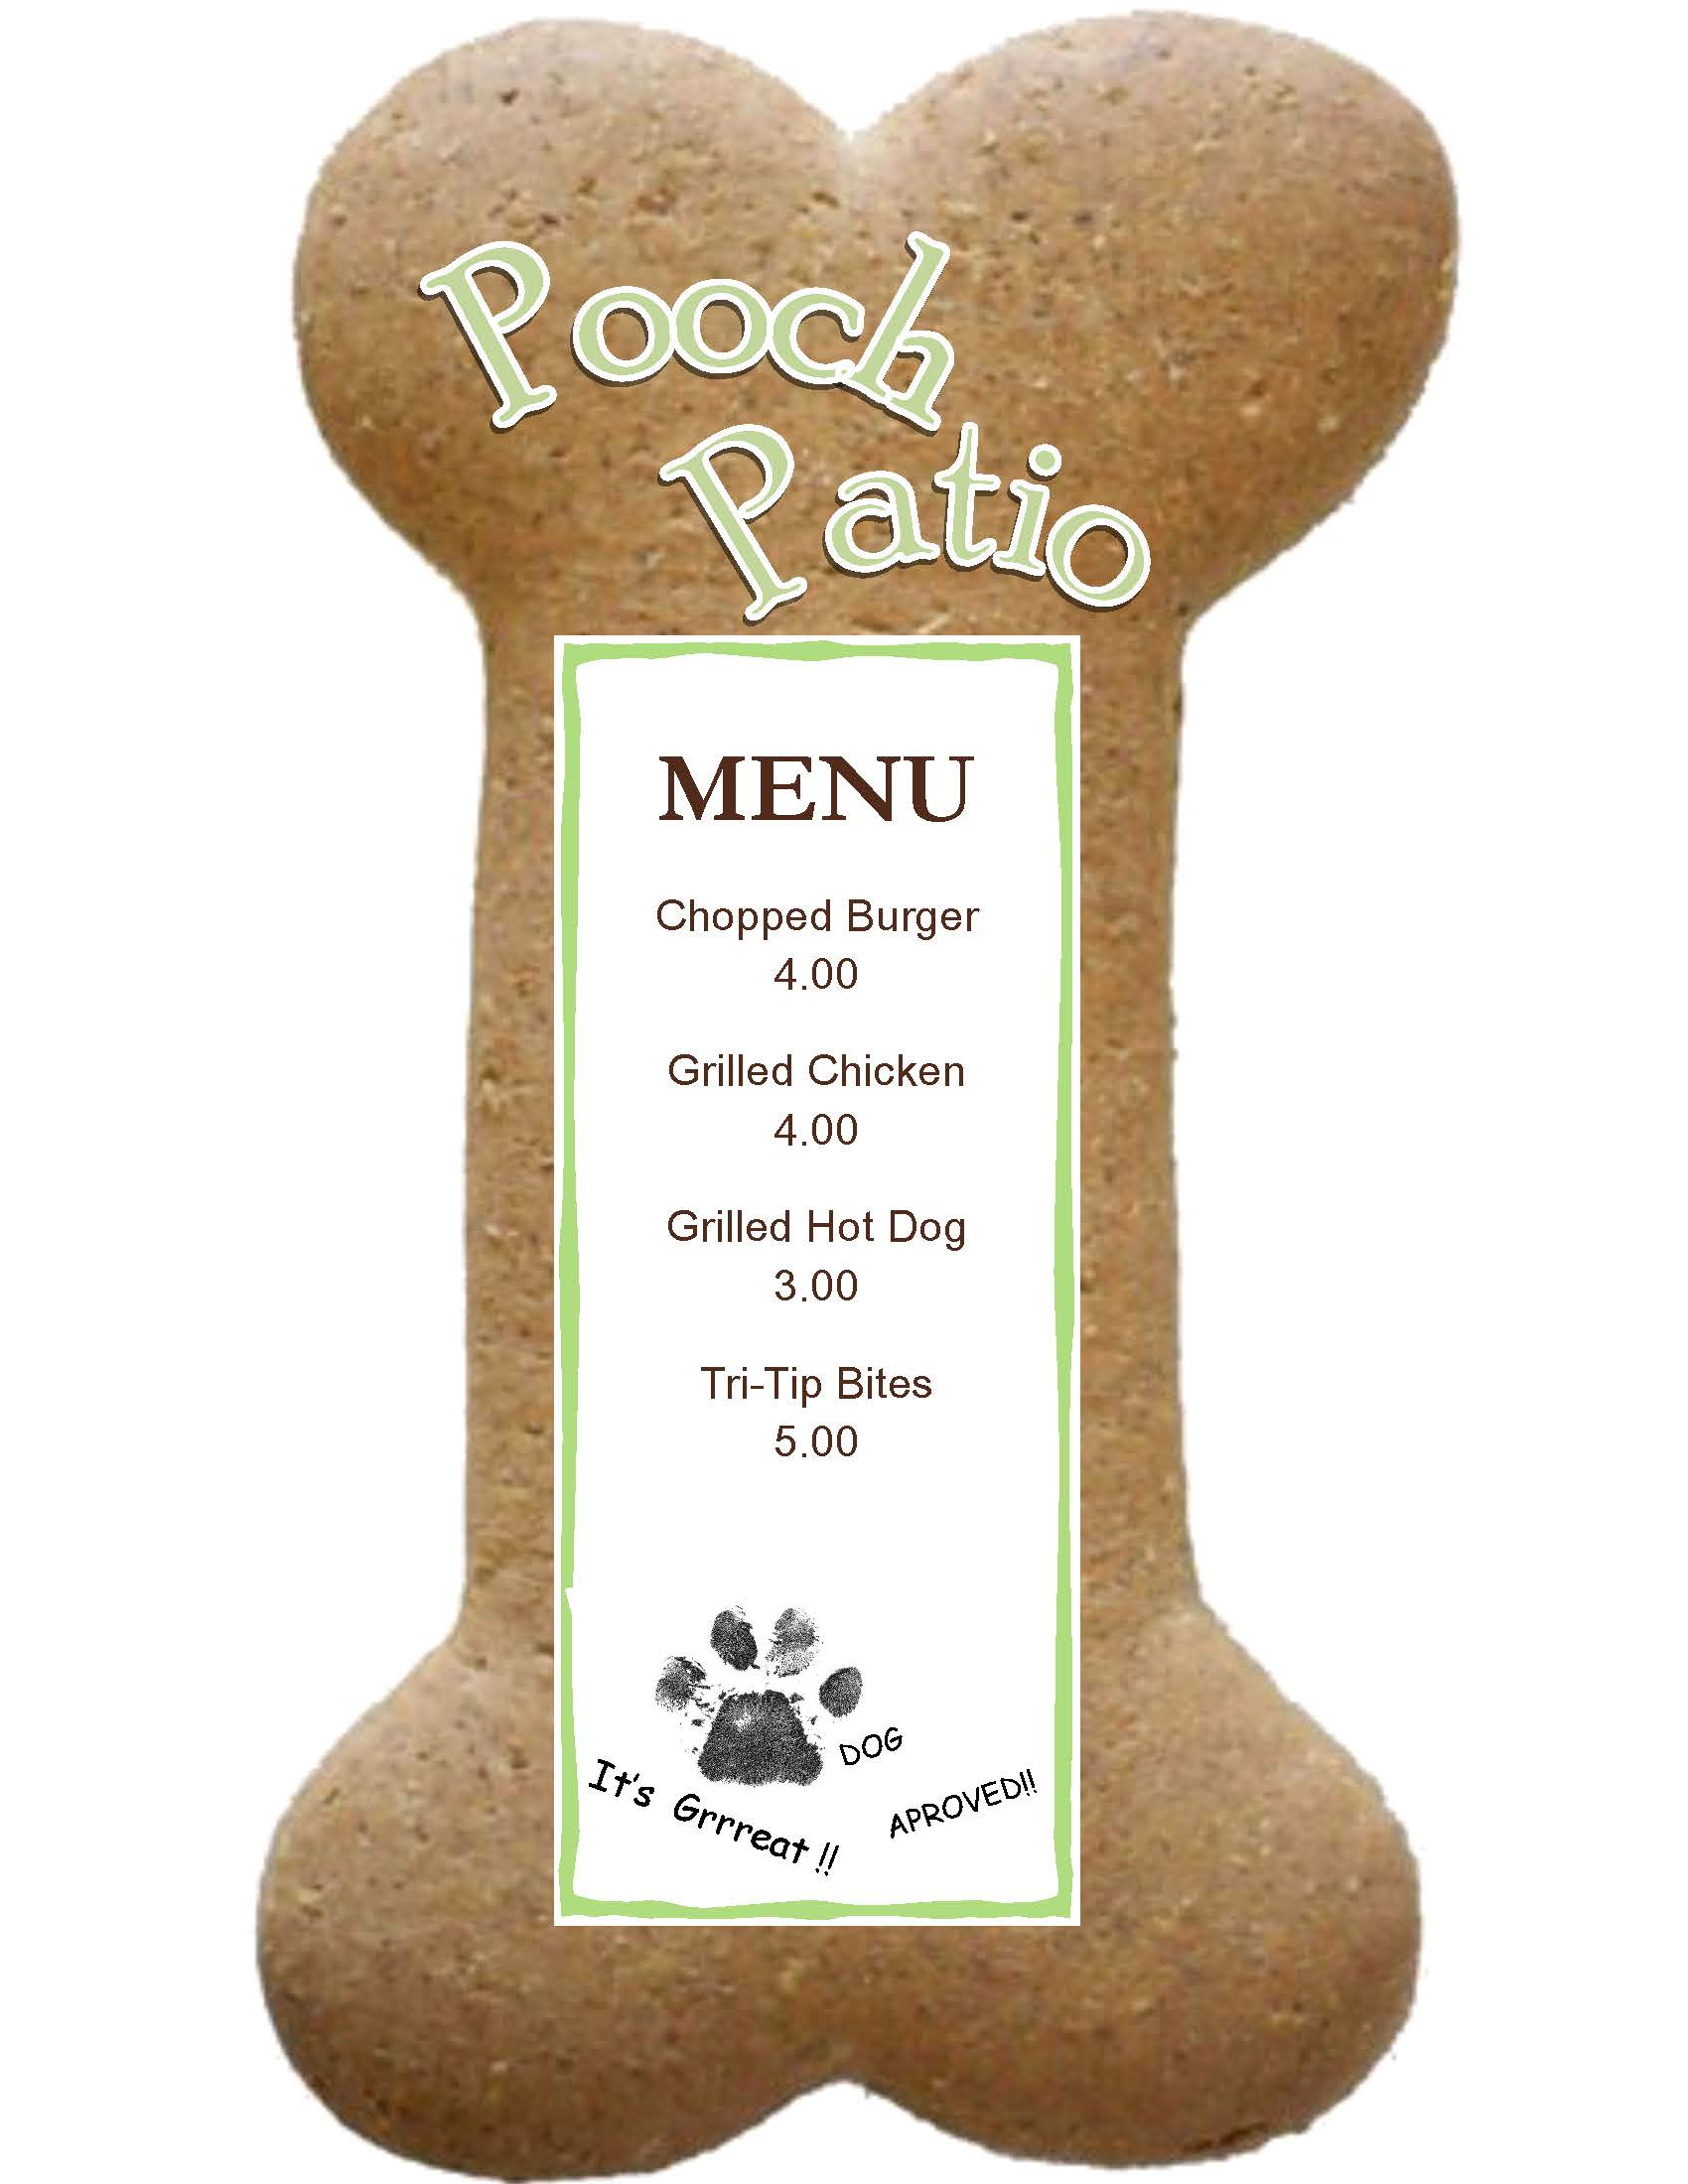 Pooch Patio Menu